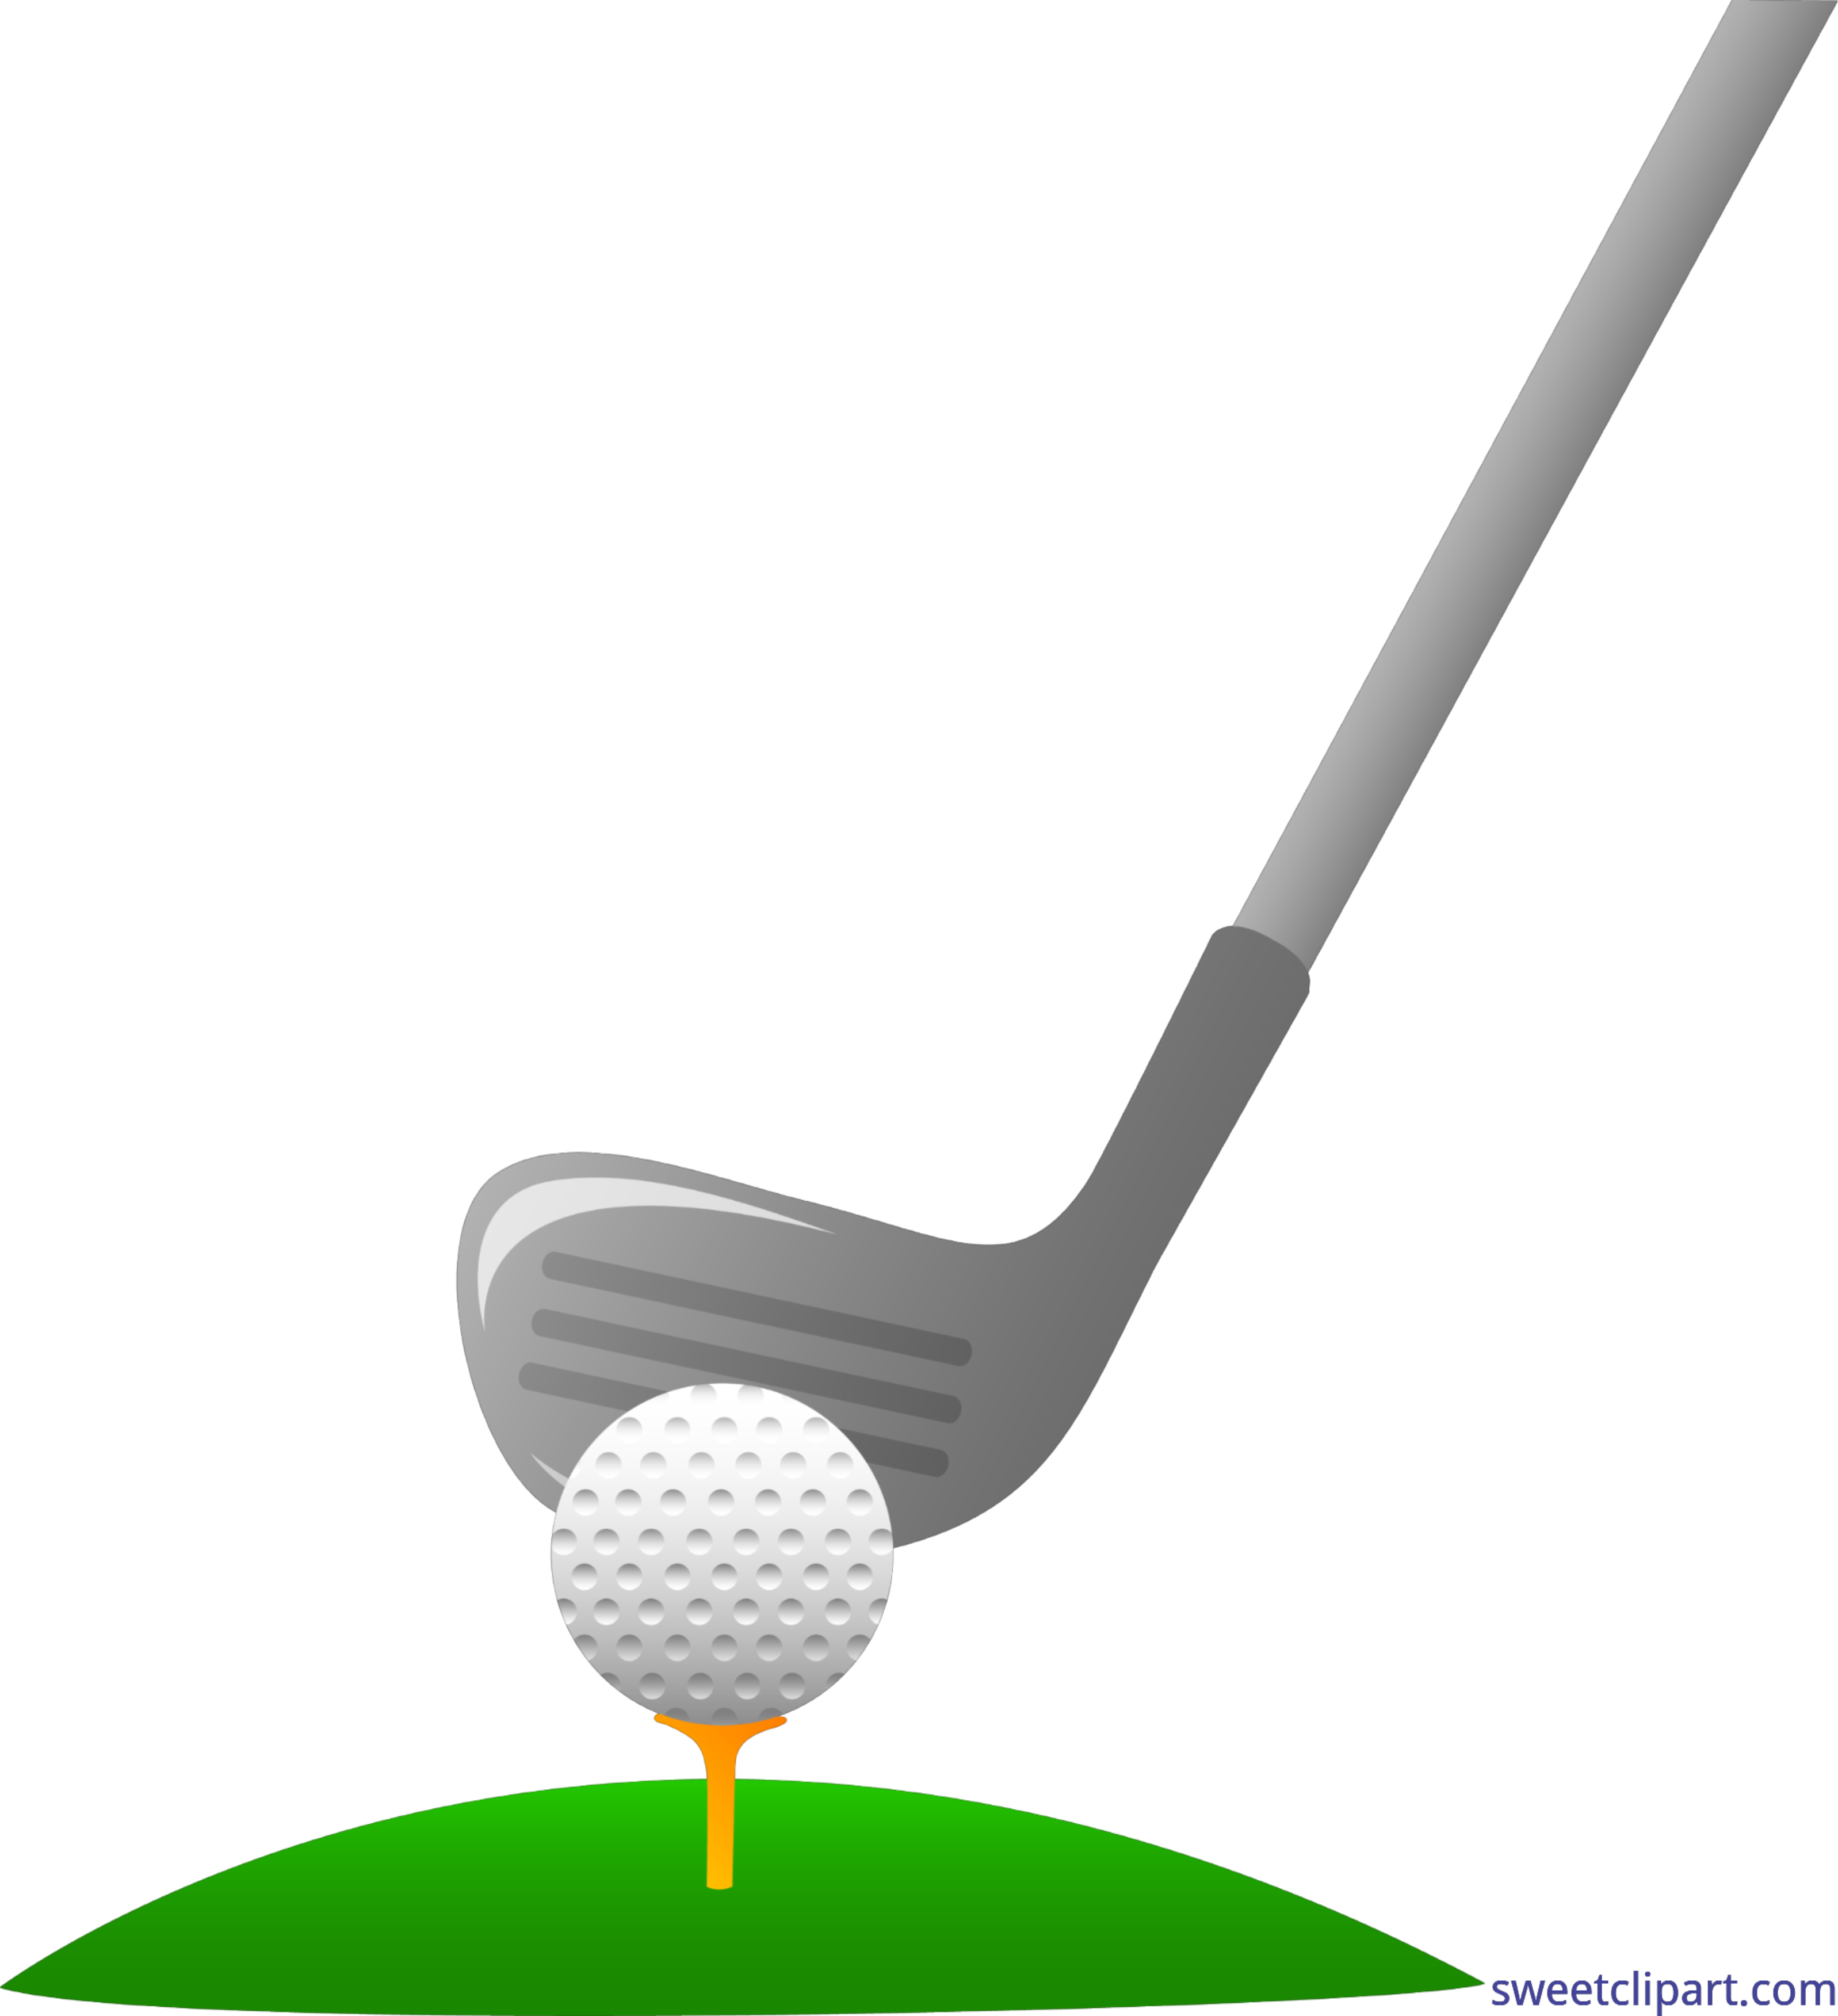 clip royalty free download Club and clip art. Golf clipart golf ball